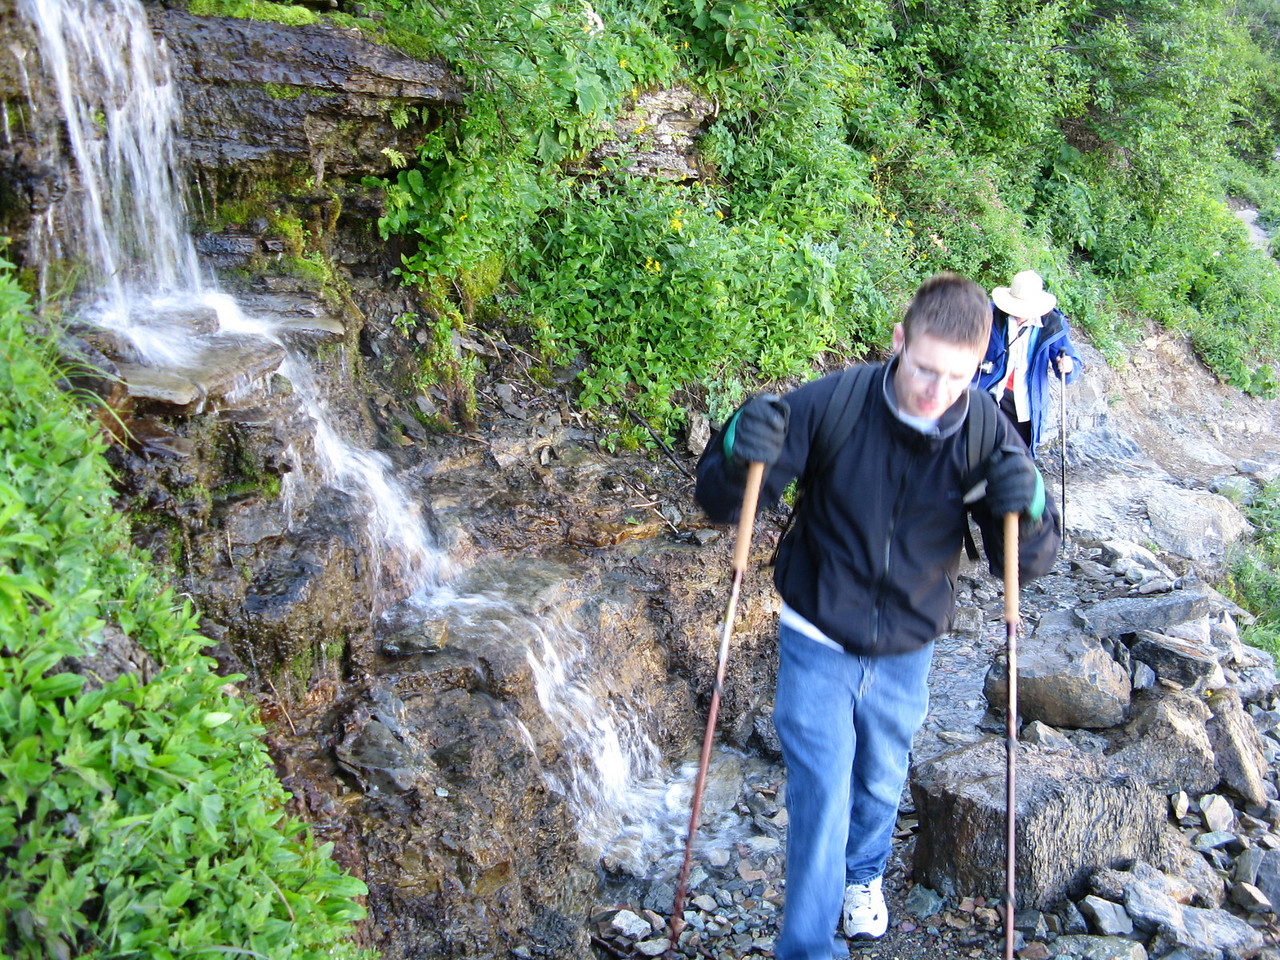 Kevin moving beyond the waterfall.